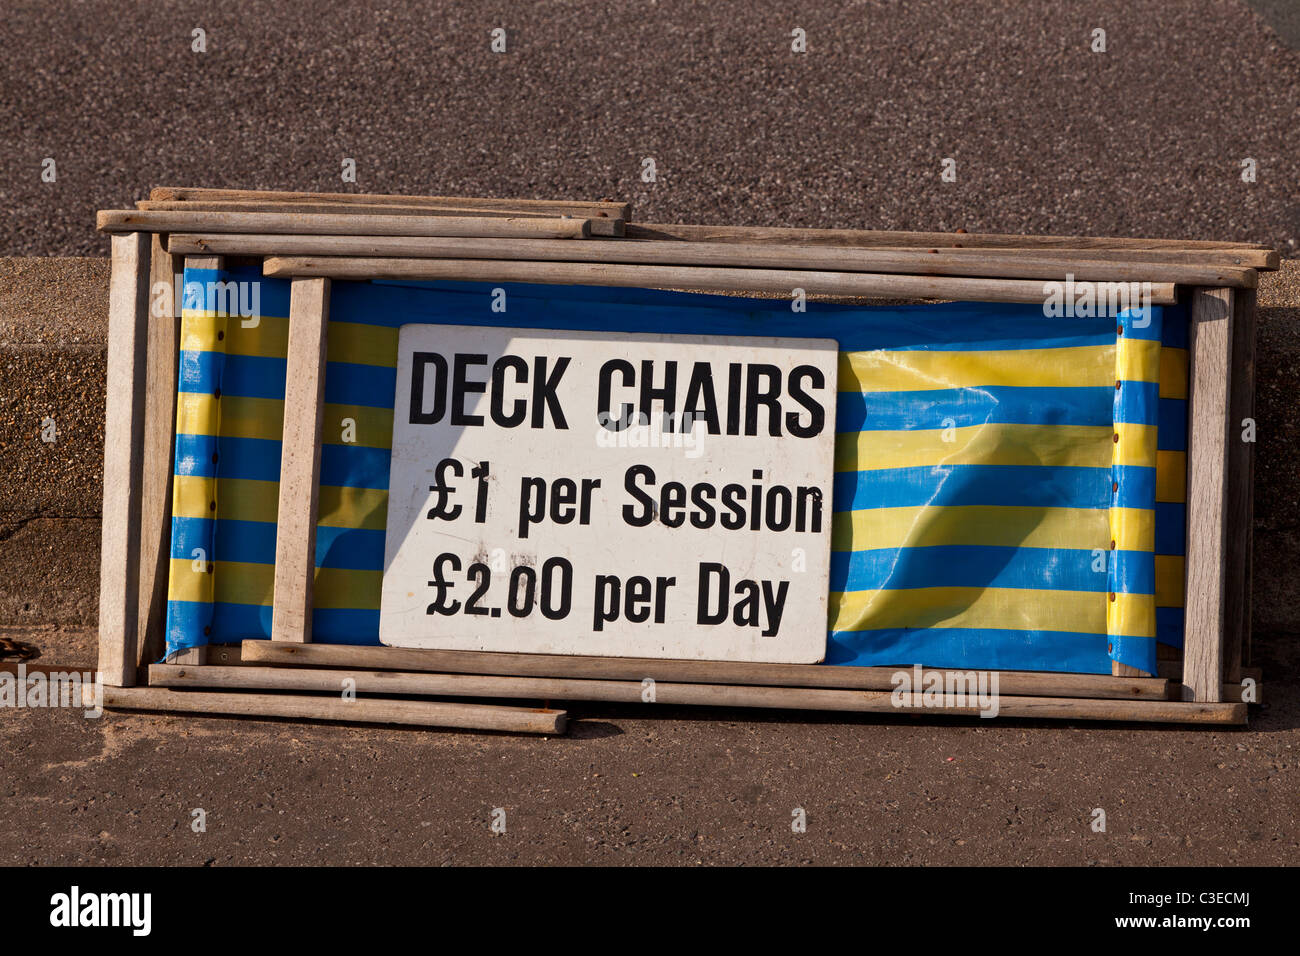 Deck chairs for hire at the holiday resort of Sidmouth, Devon - Stock Image